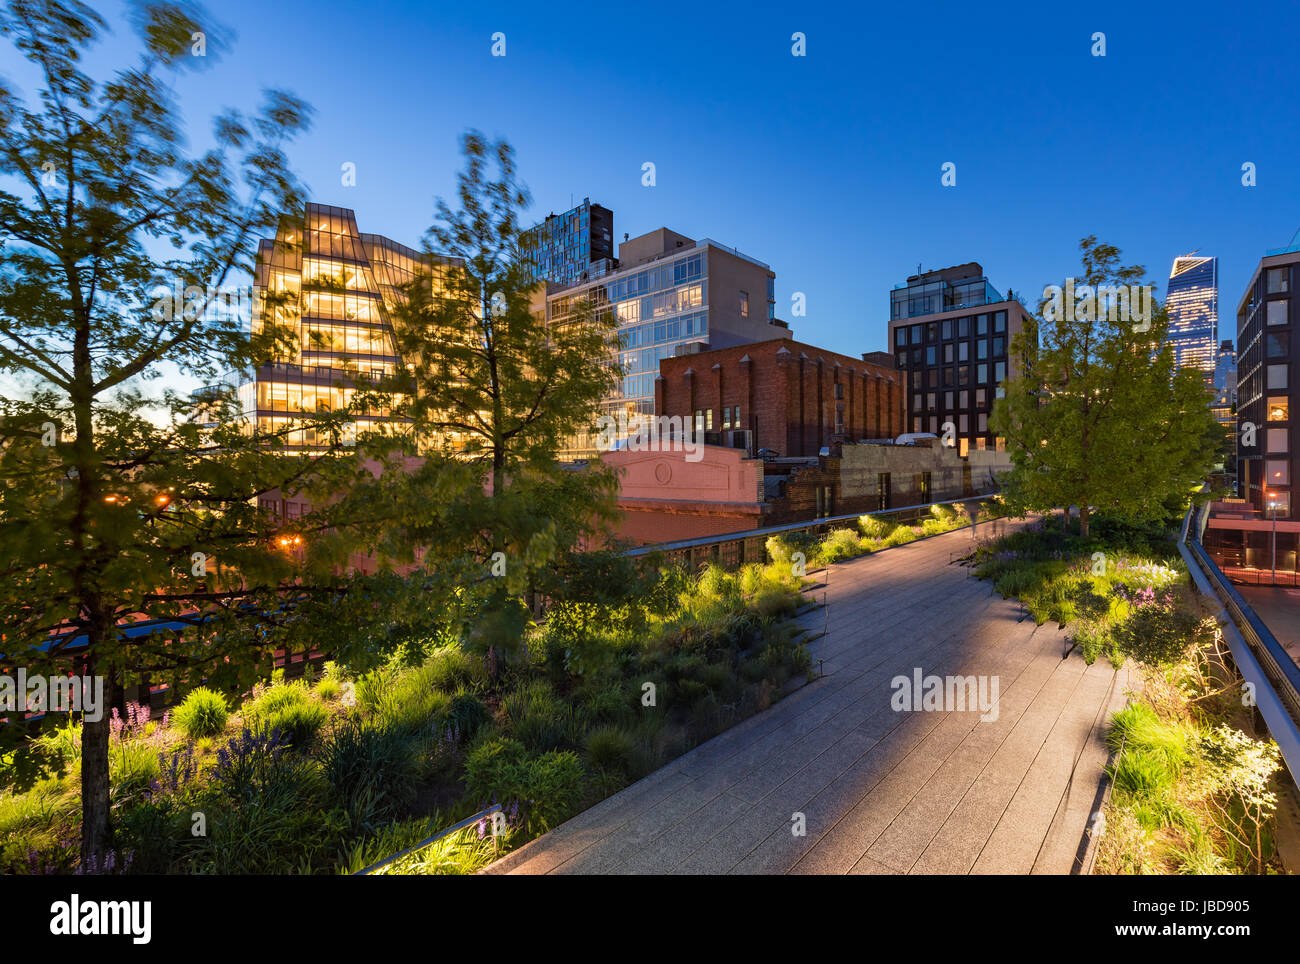 Die Highline (aerial Greenway High Line Park) in der Dämmerung im Sommer. Chelsea, Manhattan, New York City Stockbild